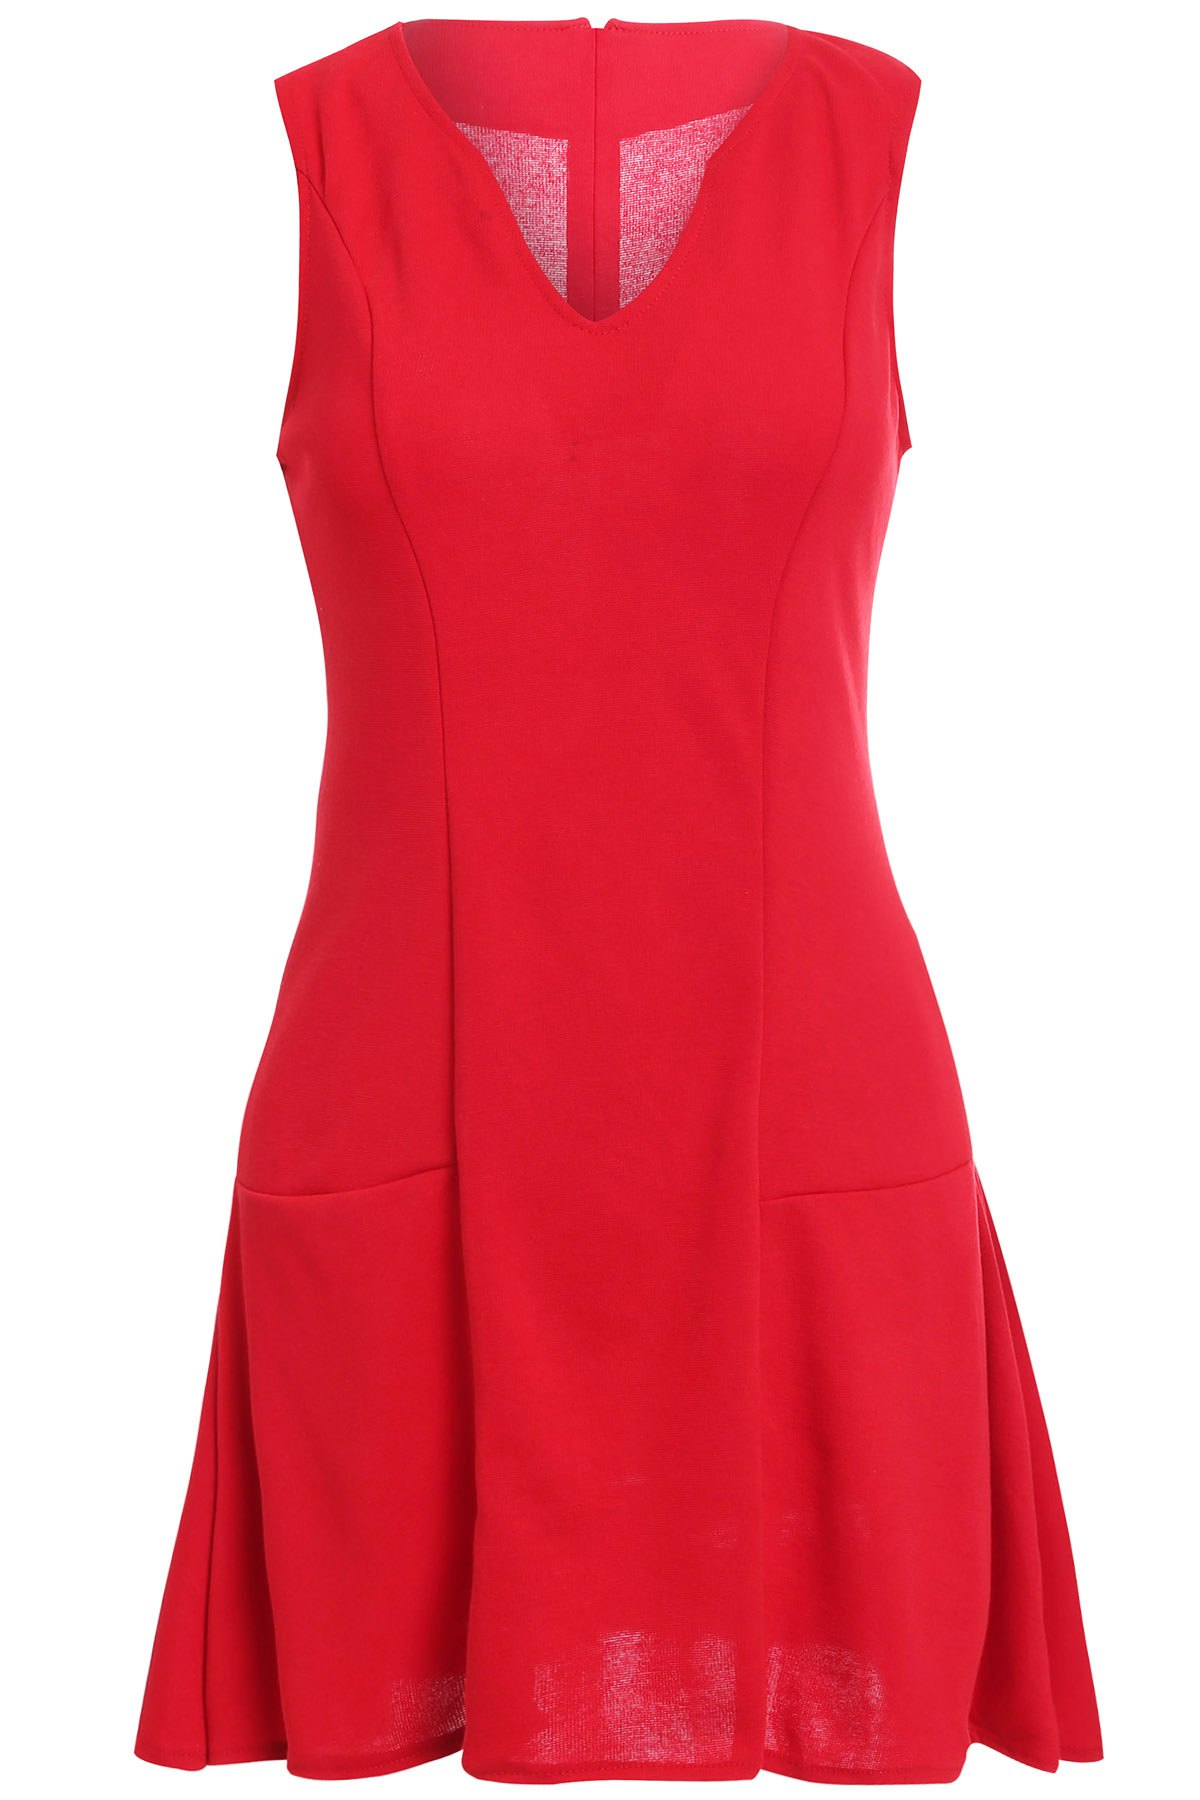 Simple V Neck Sleeveless Pure Color Dress For Women - RED S